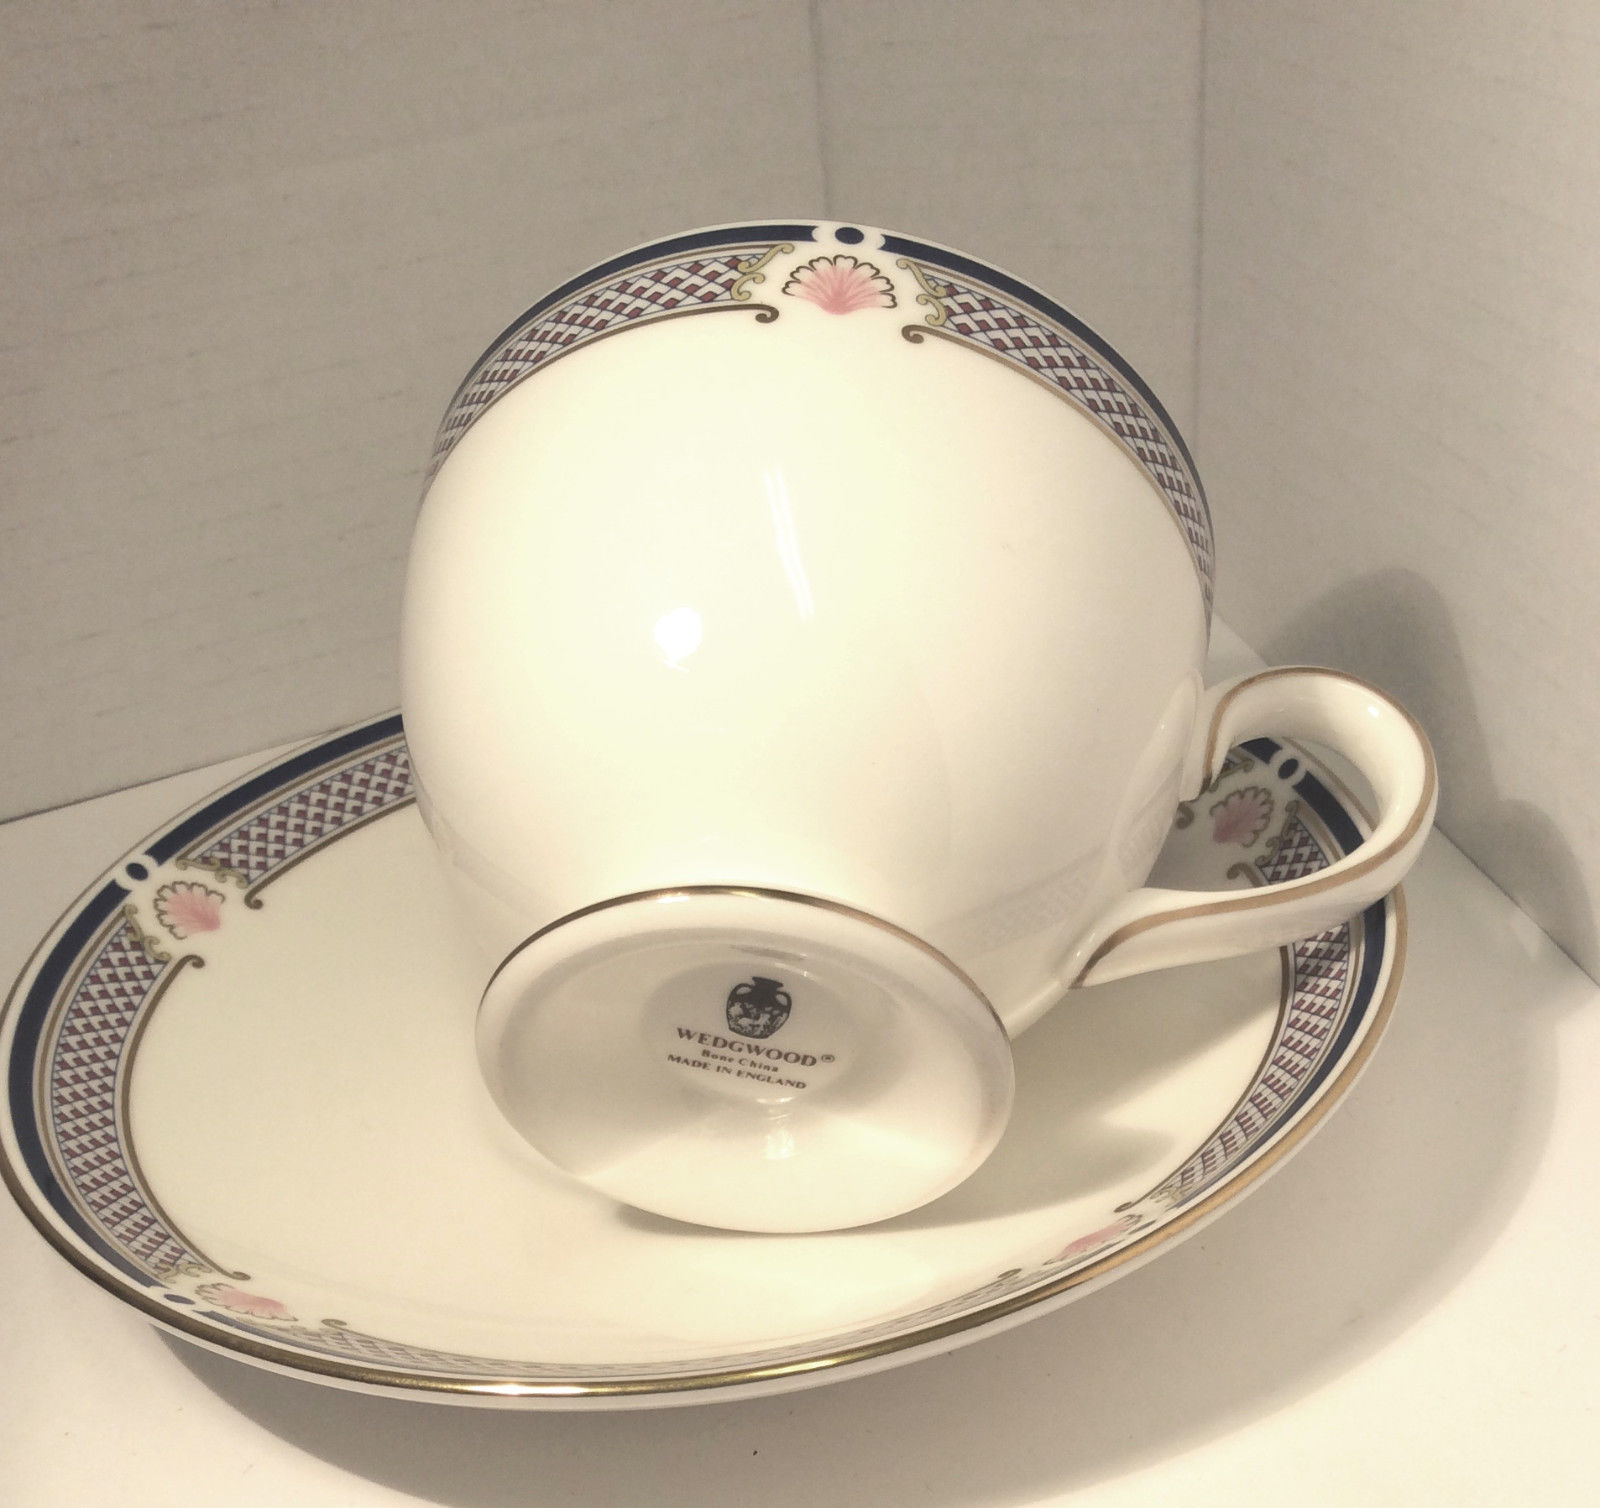 Wedgwood Waverley China TEA CUP & SAUCER, Excellent conditon - Nice Gift image 2